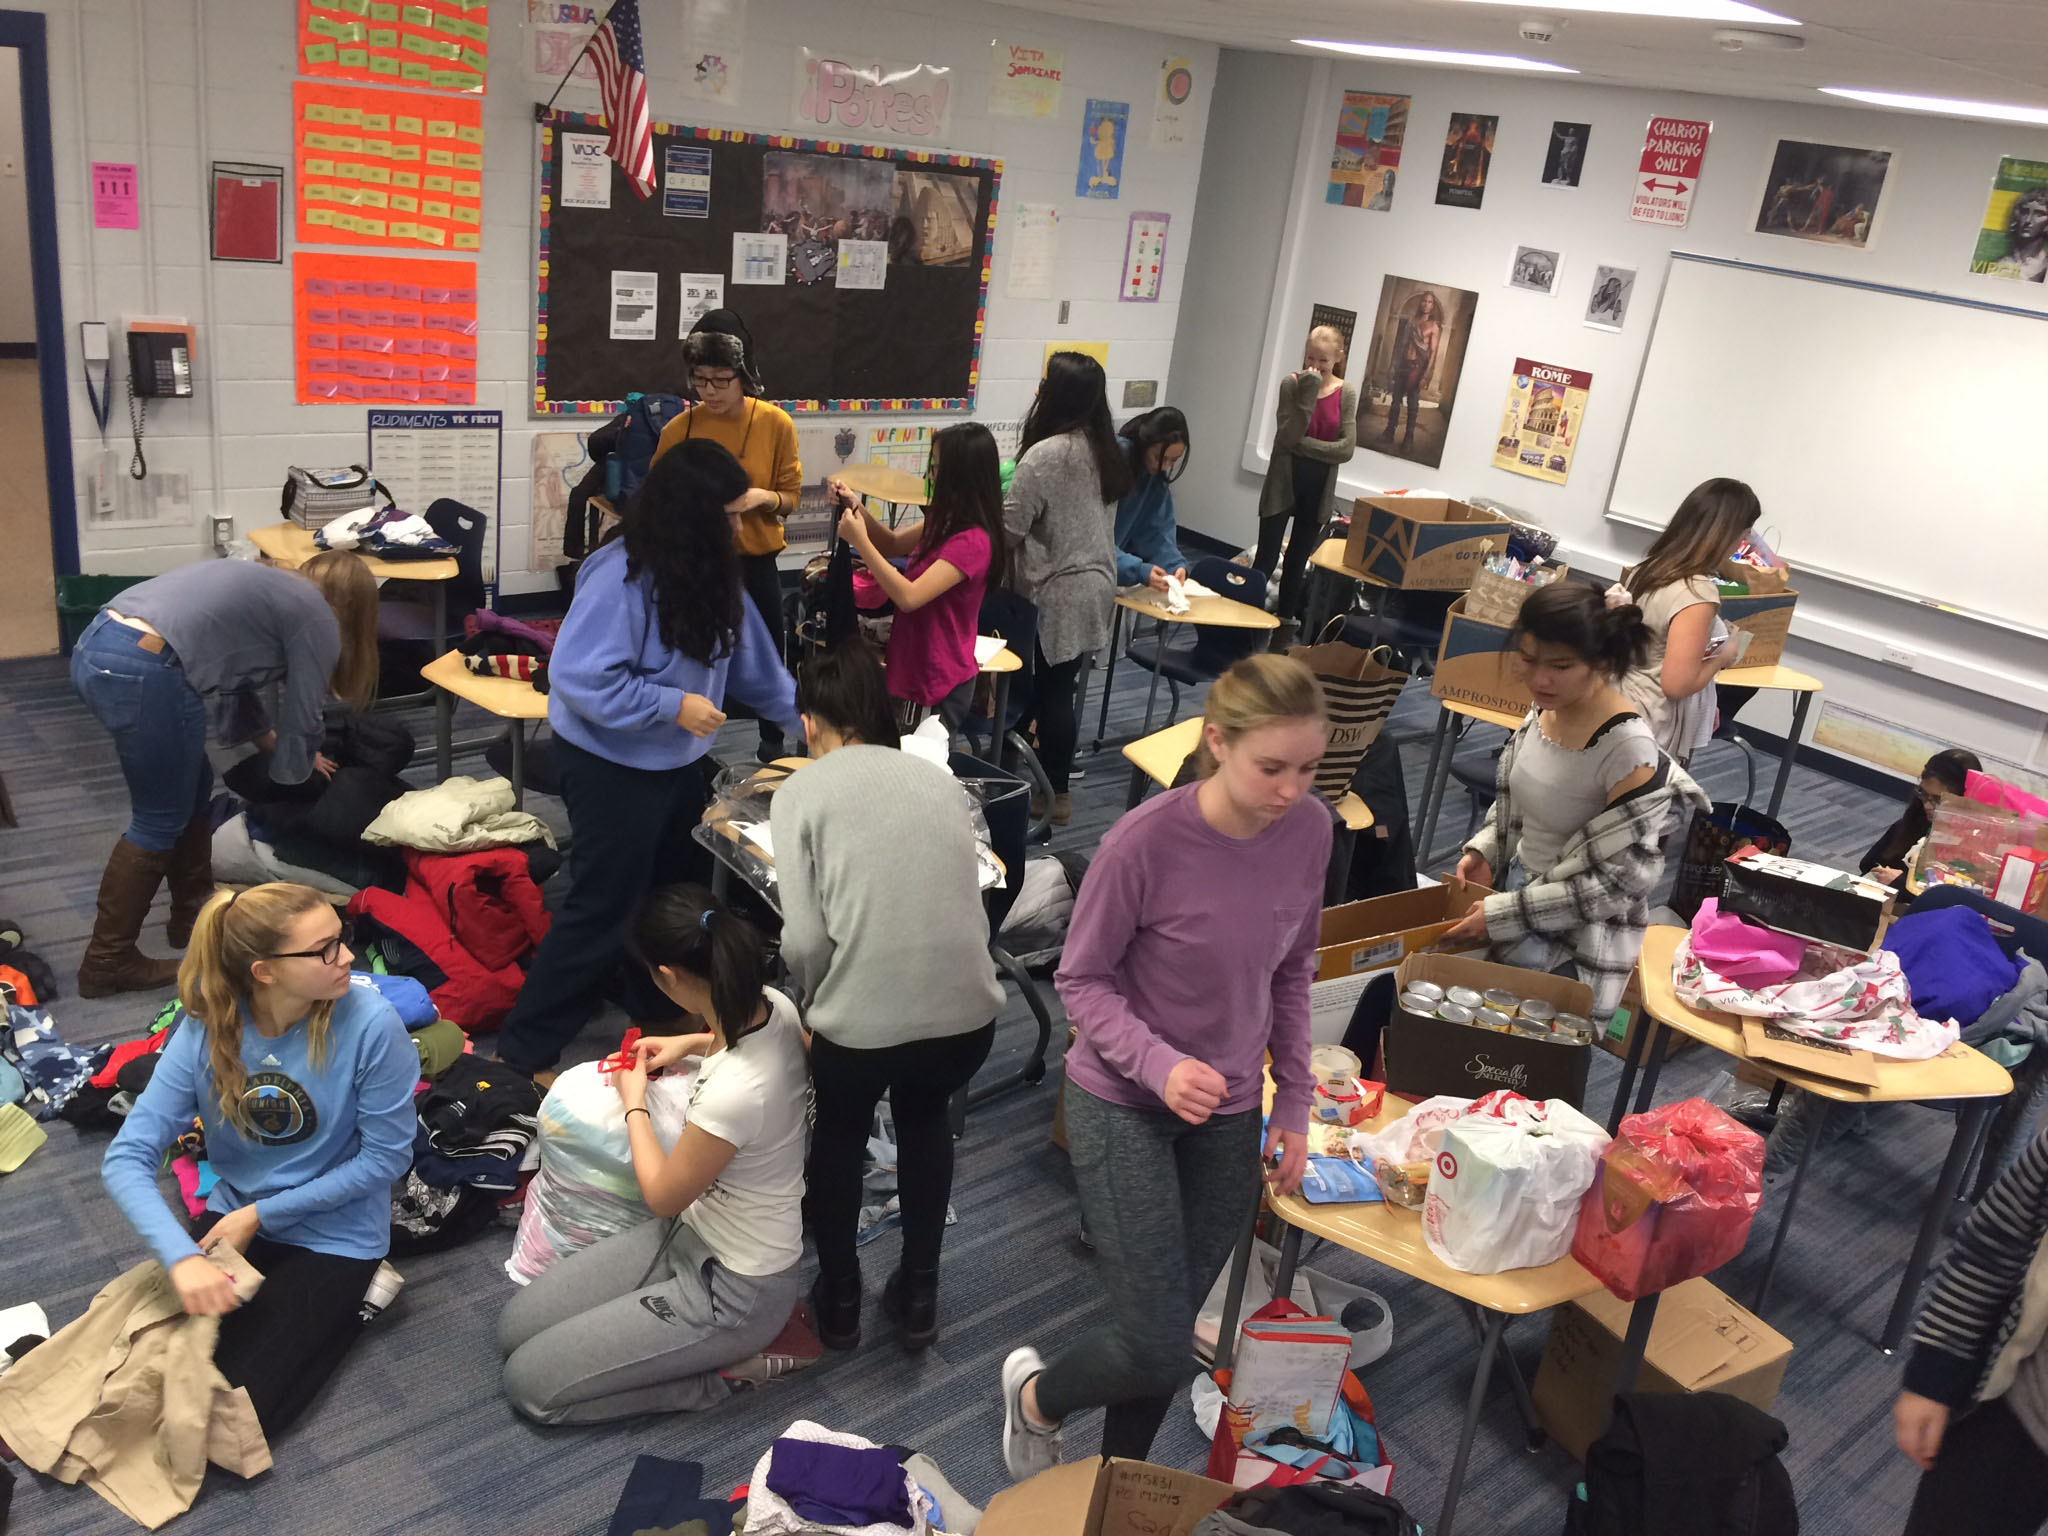 Several students organizing donations in a classroom.